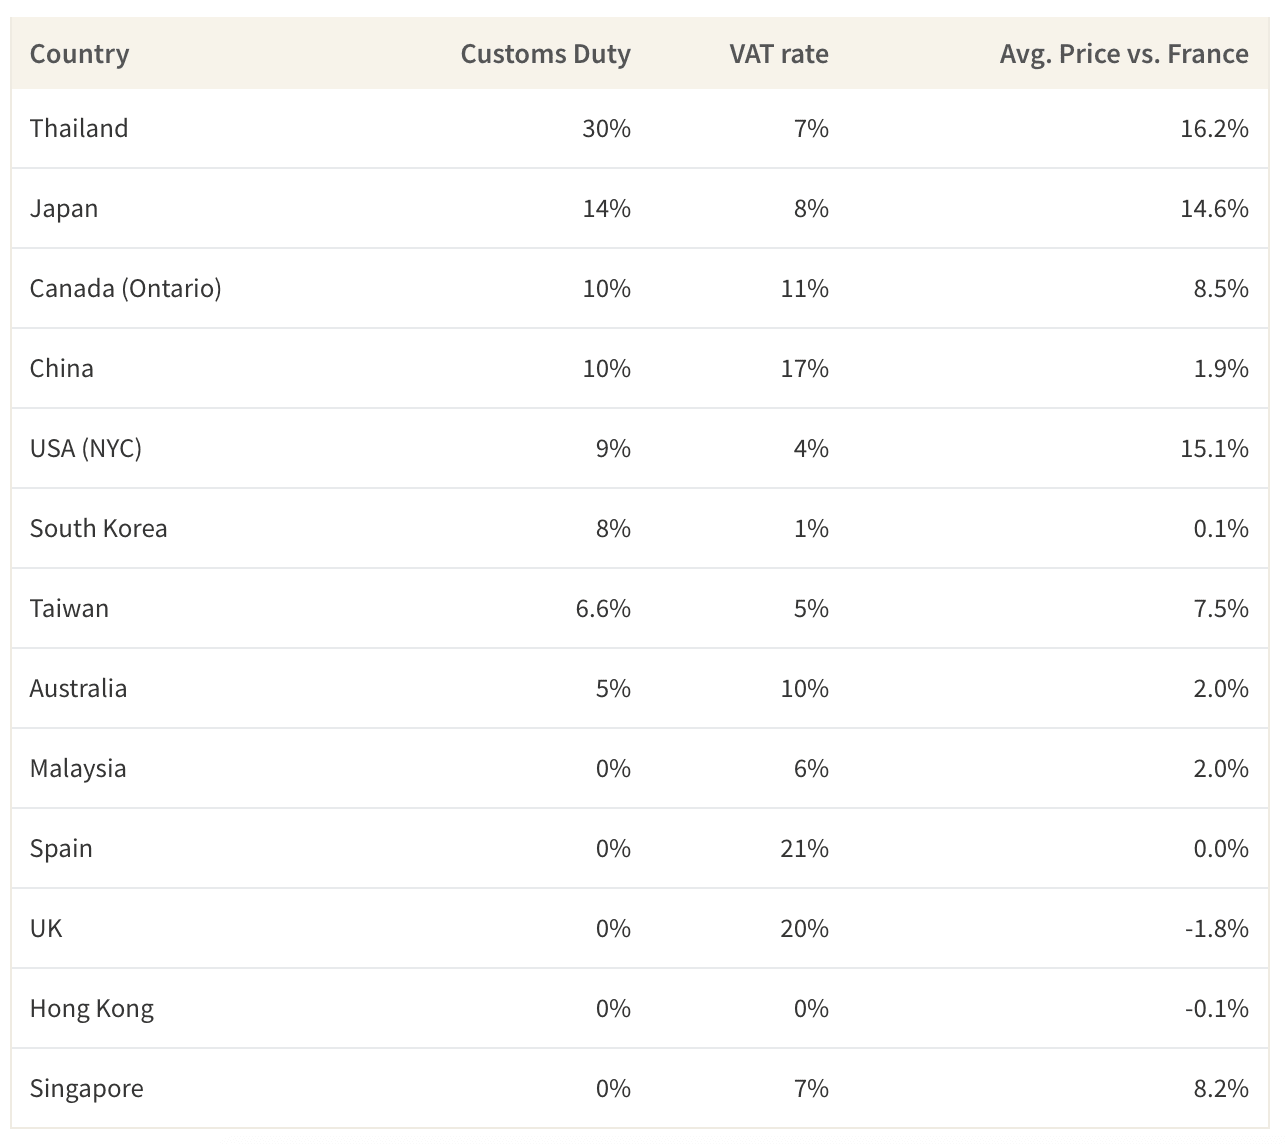 This table shows the comparison between customs duty of leather goods imported to countries from France, compared to the price difference of Chanel items in France compared to the respective countries